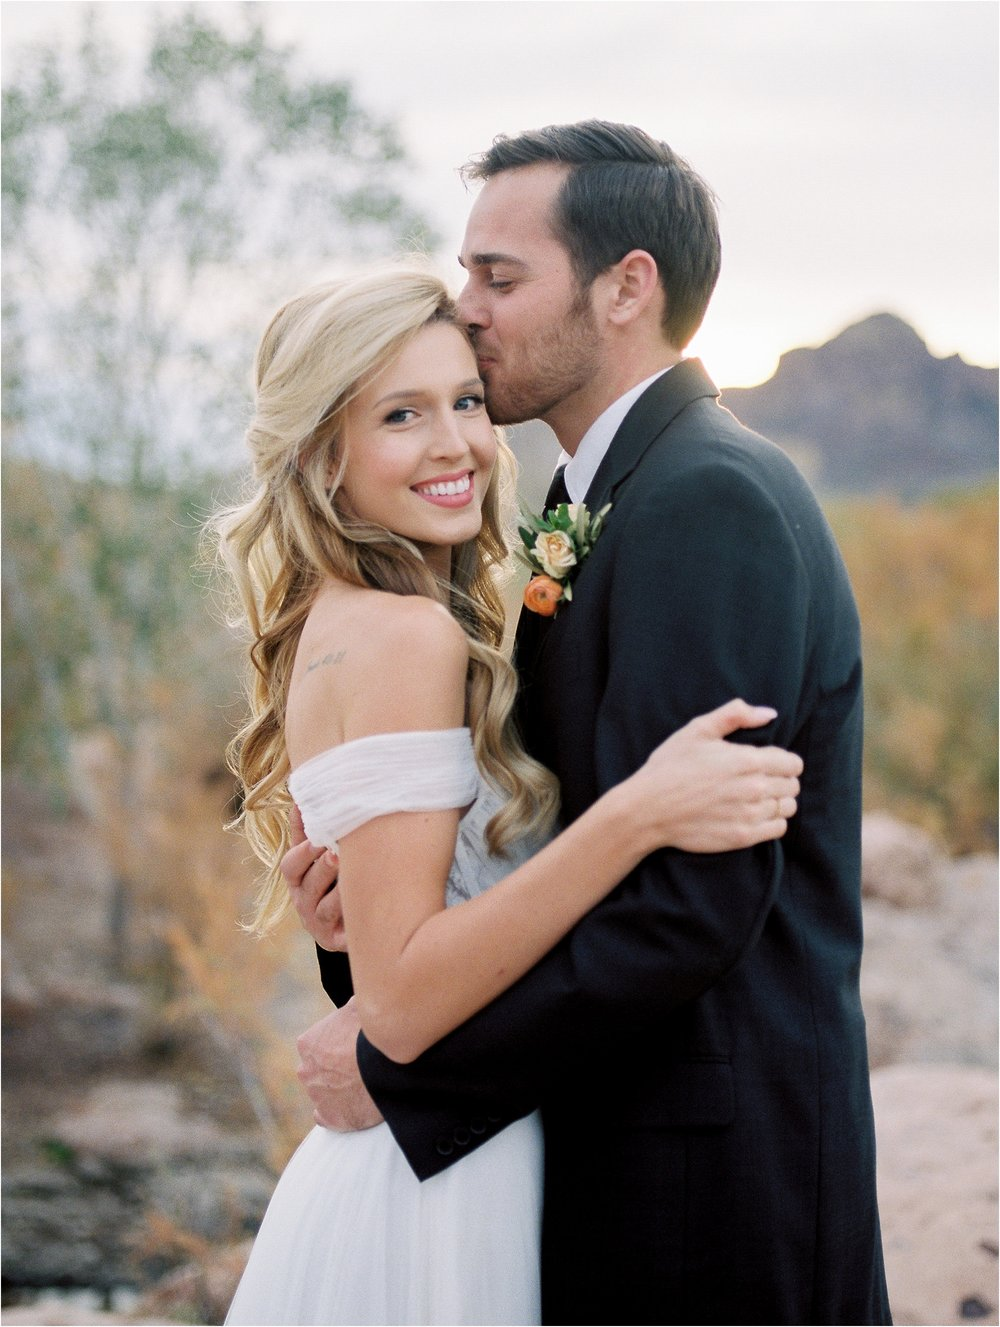 Sarah Jane Photography Film Hybrid Scottsdale Phoenix Arizona Destination Wedding Photographer Ally Ryan Desert_0020.jpg